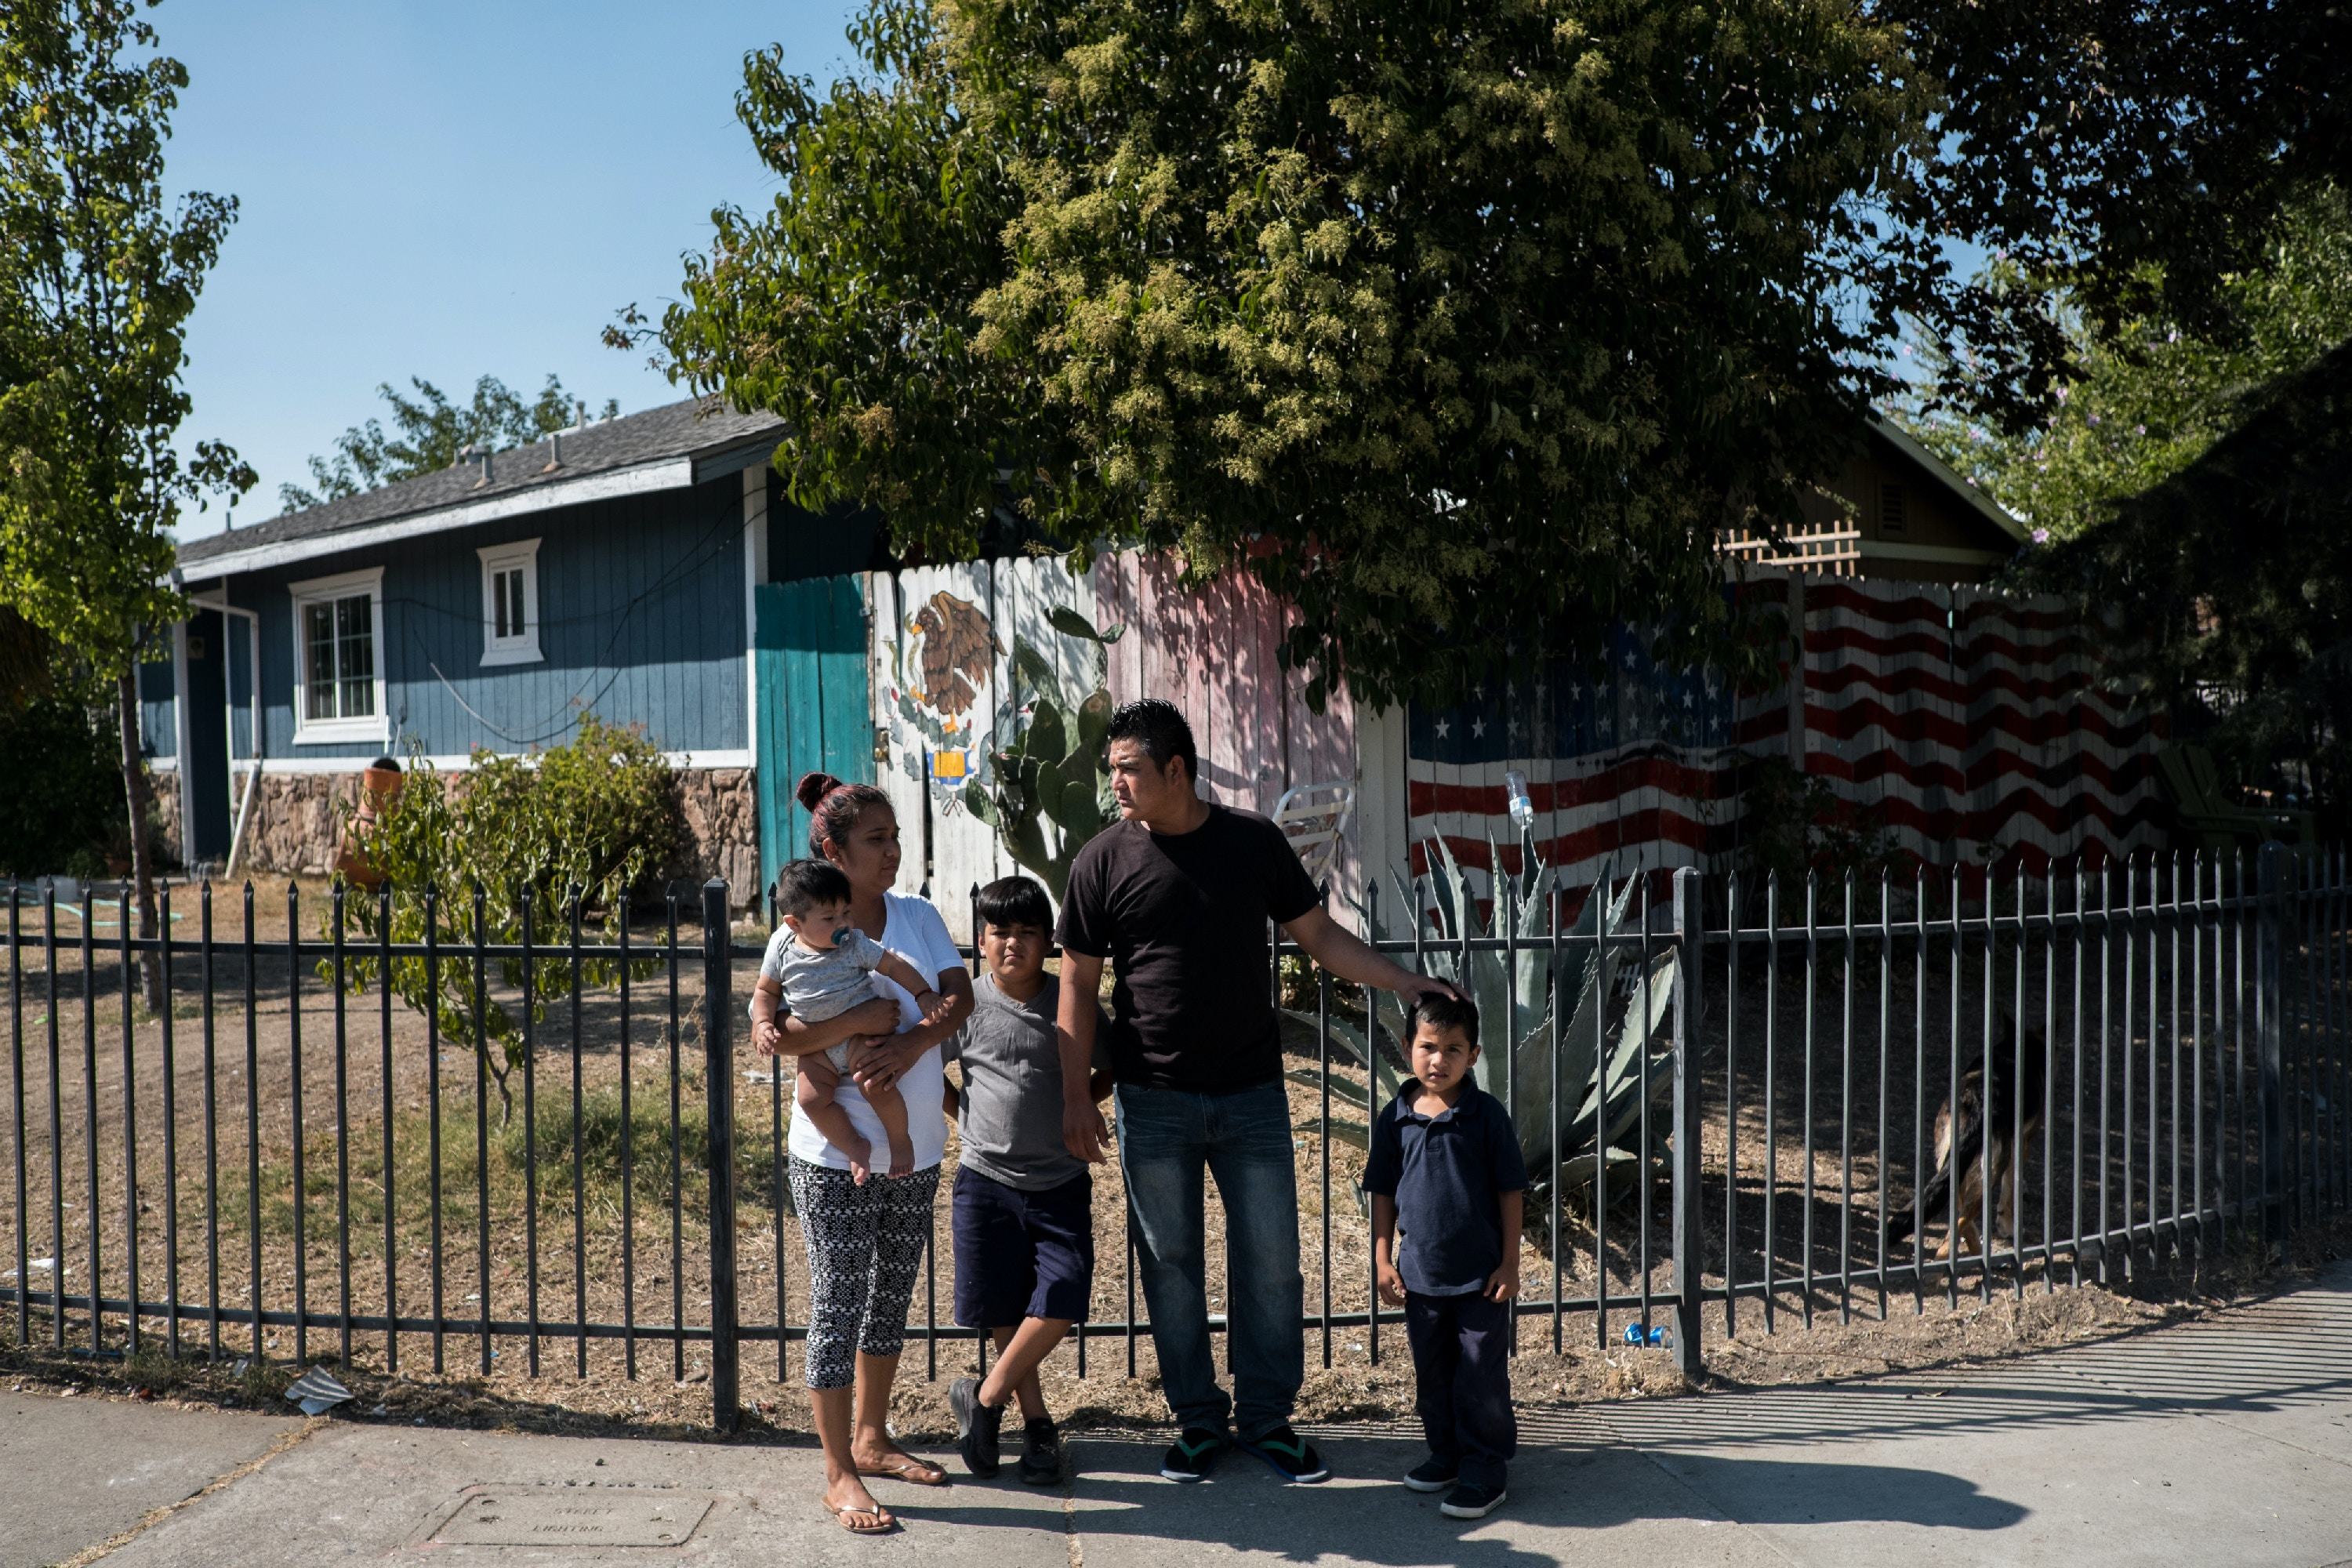 Carlos Rueda Cruz, 28, second from right, poses for a portrait with his family outside their home in Sacramento, Calif., Monday, Sept. 10, 2018. (Joel Angel Juárez for The Intercept)